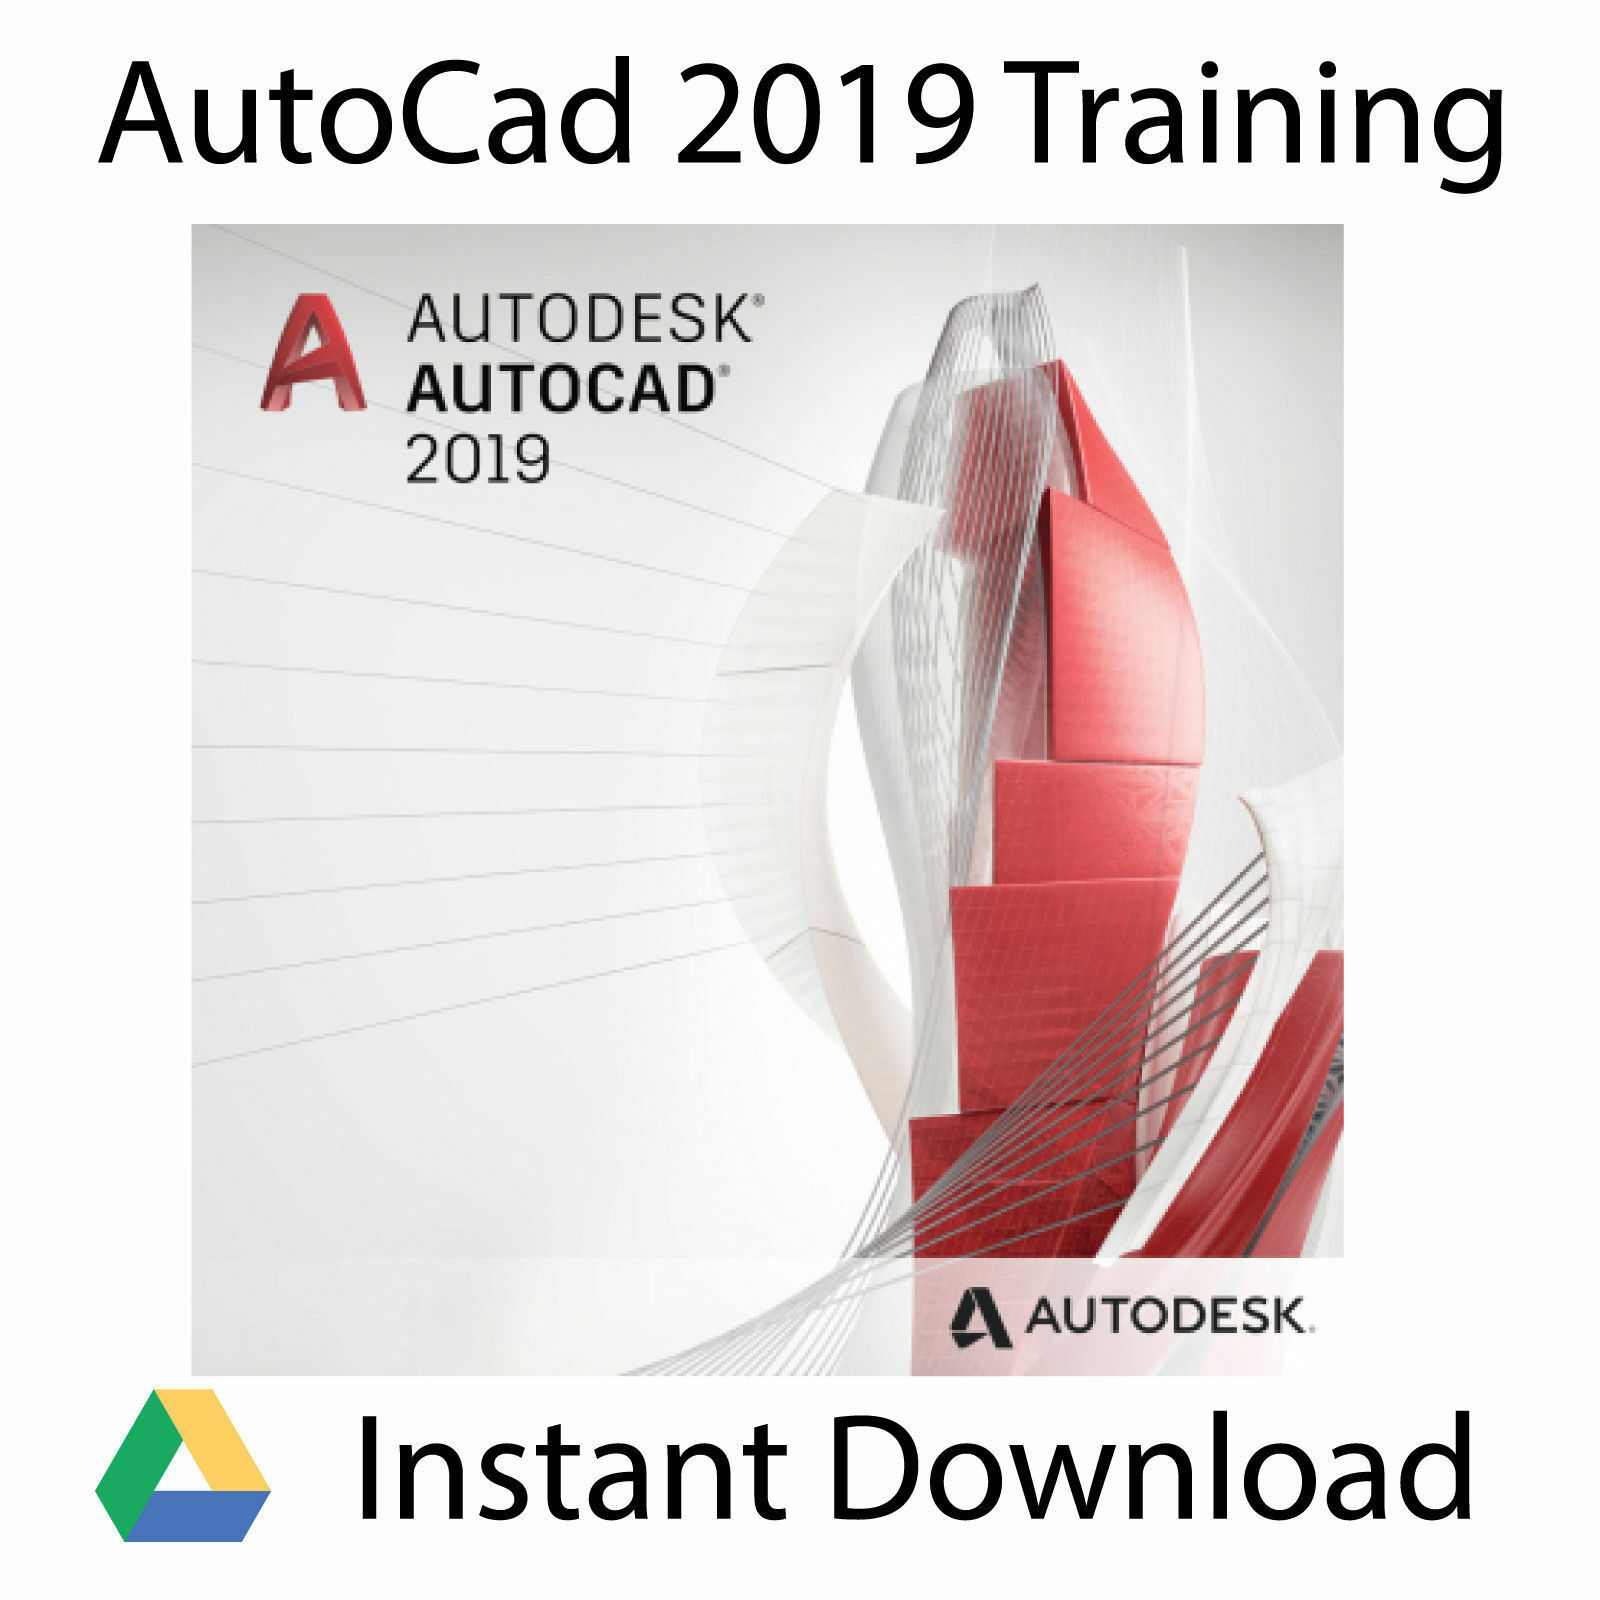 Details about Autodesk AutoCAD 2019 Professional Video Training Tutorial –  Instant Download